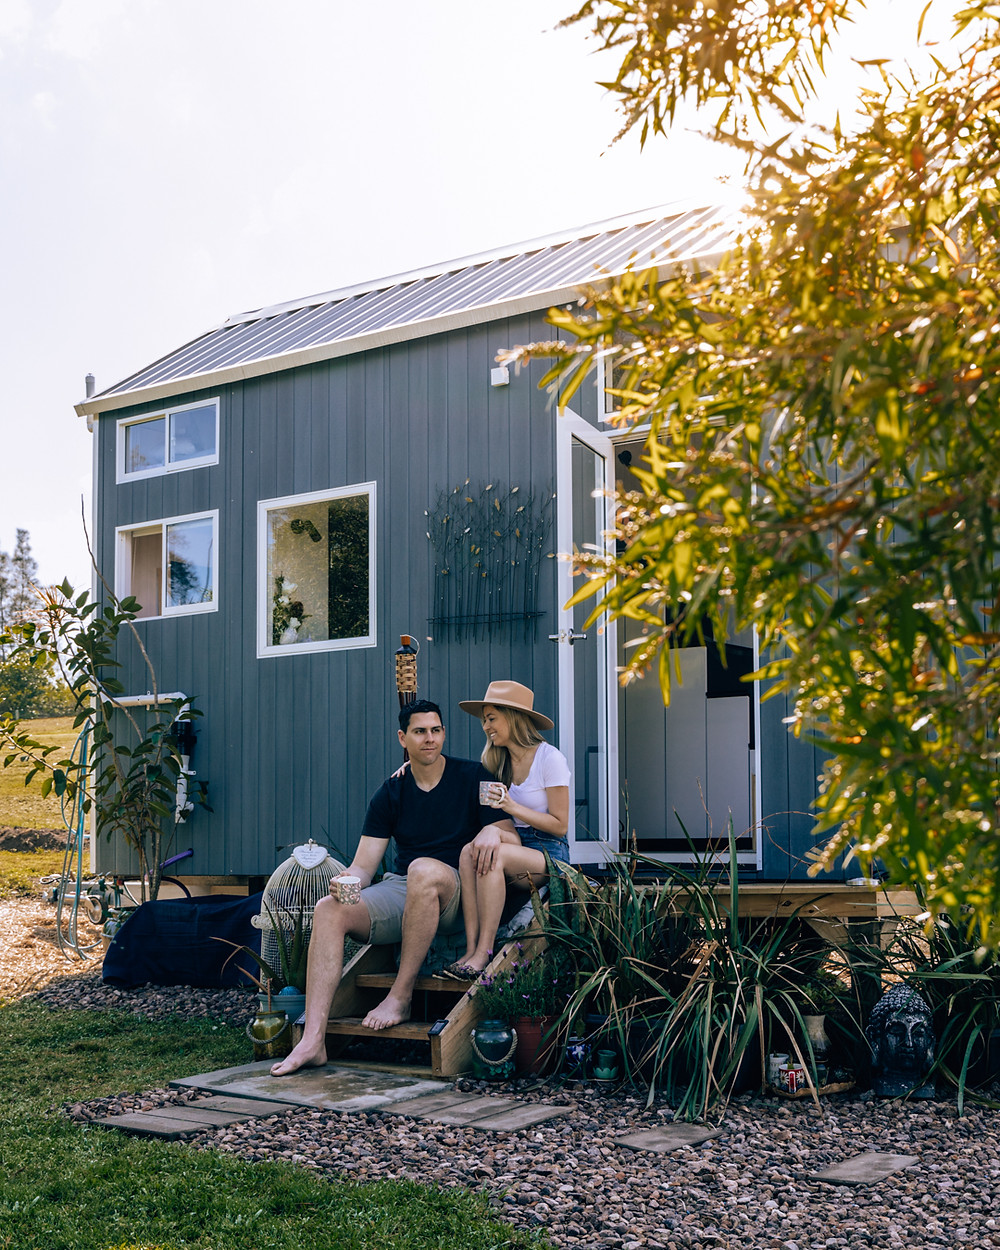 Stay at the Clyde tiny home in Eagleton, NSW with Riparide